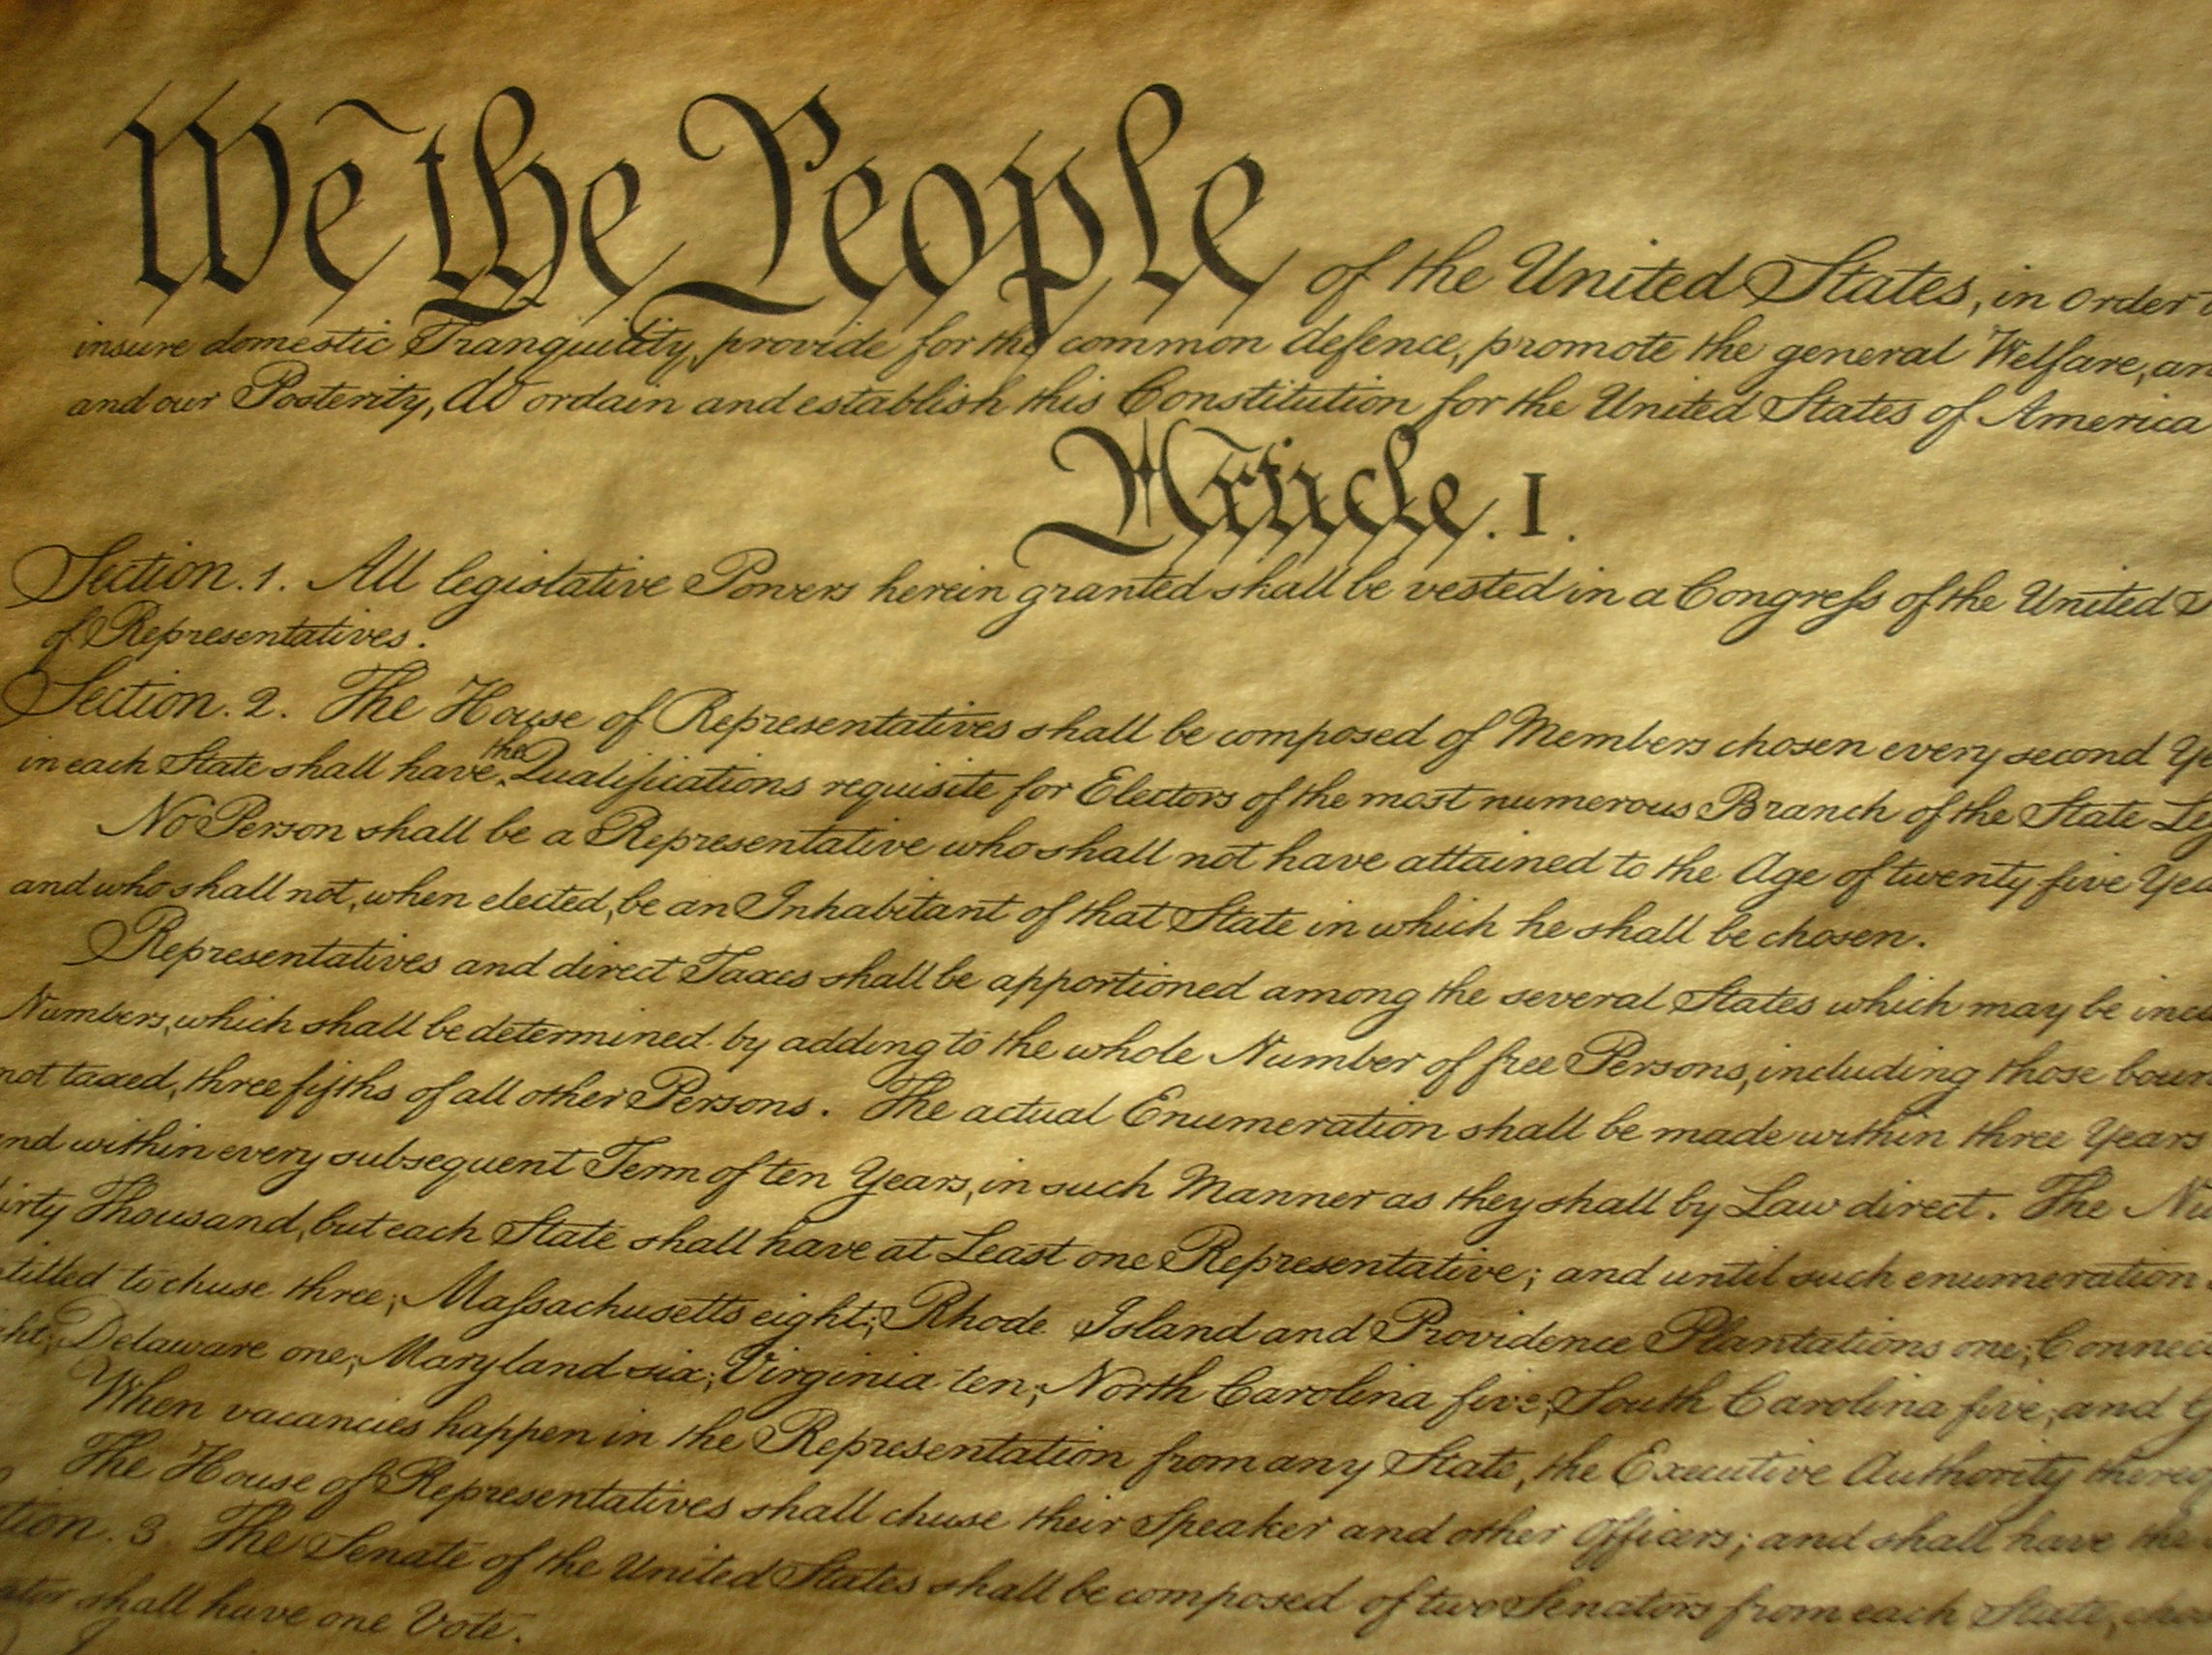 Essay On English Subject Repealing Birthright Citizenship The Unintended Consequences   Migrationpolicyorg Essay About Health also Narrative Essay Sample Papers Repealing Birthright Citizenship The Unintended Consequences  High School Admission Essay Samples